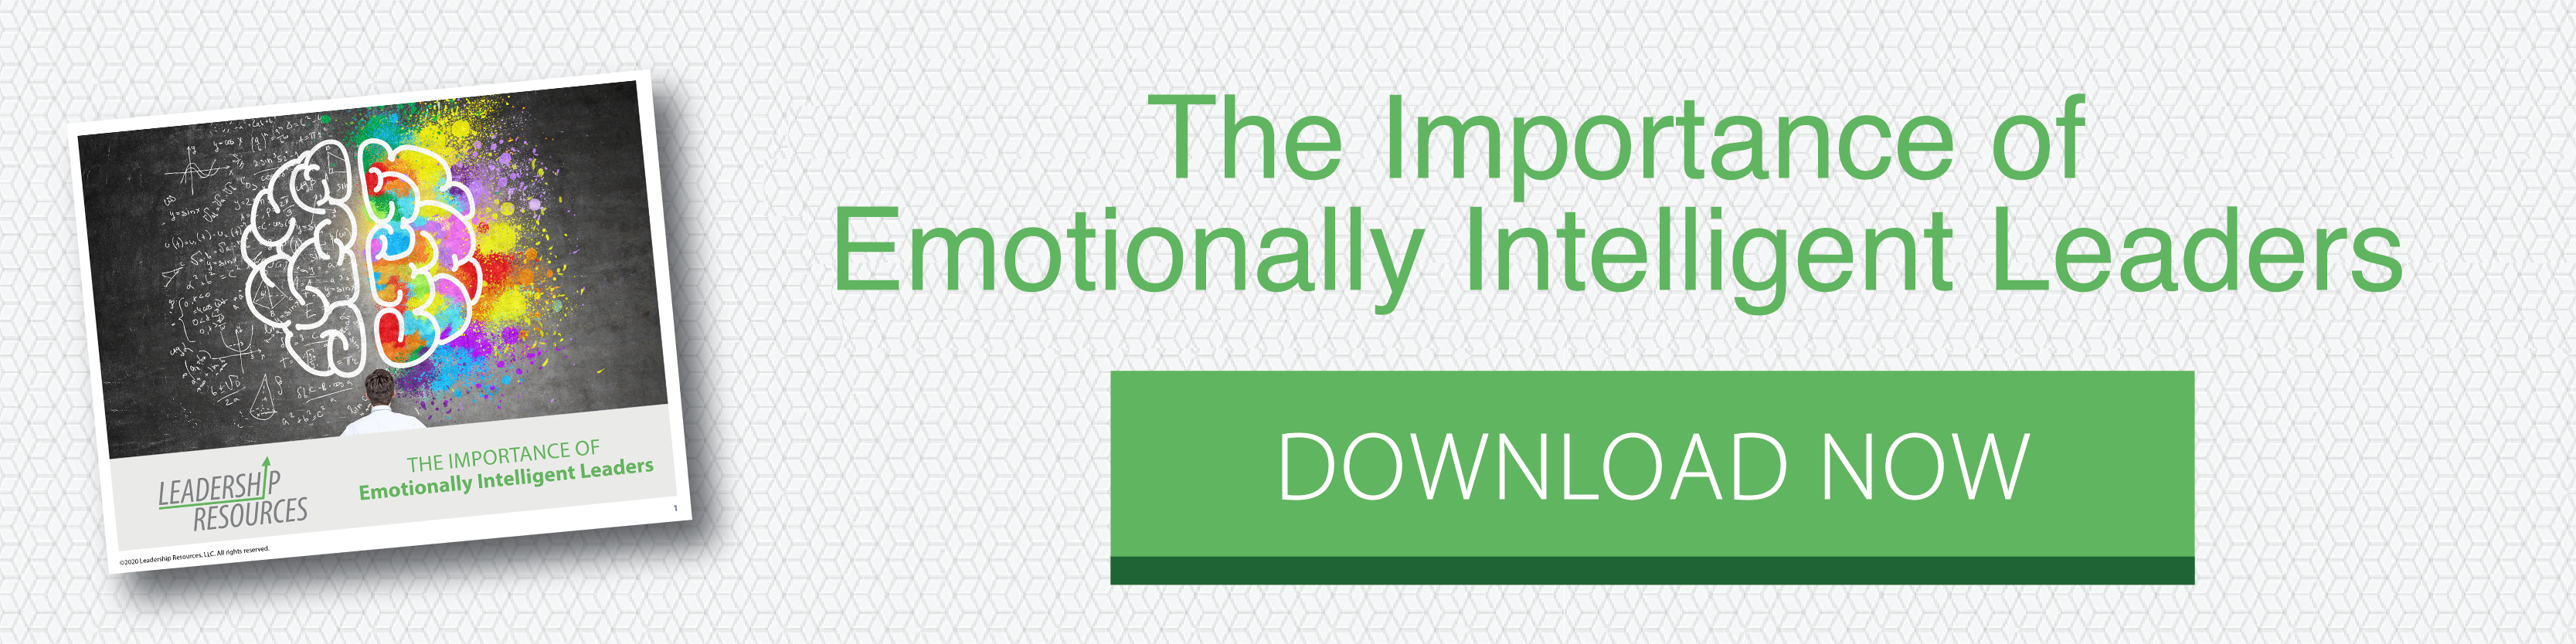 Emotionally Intelligent Leaders White paper - Download